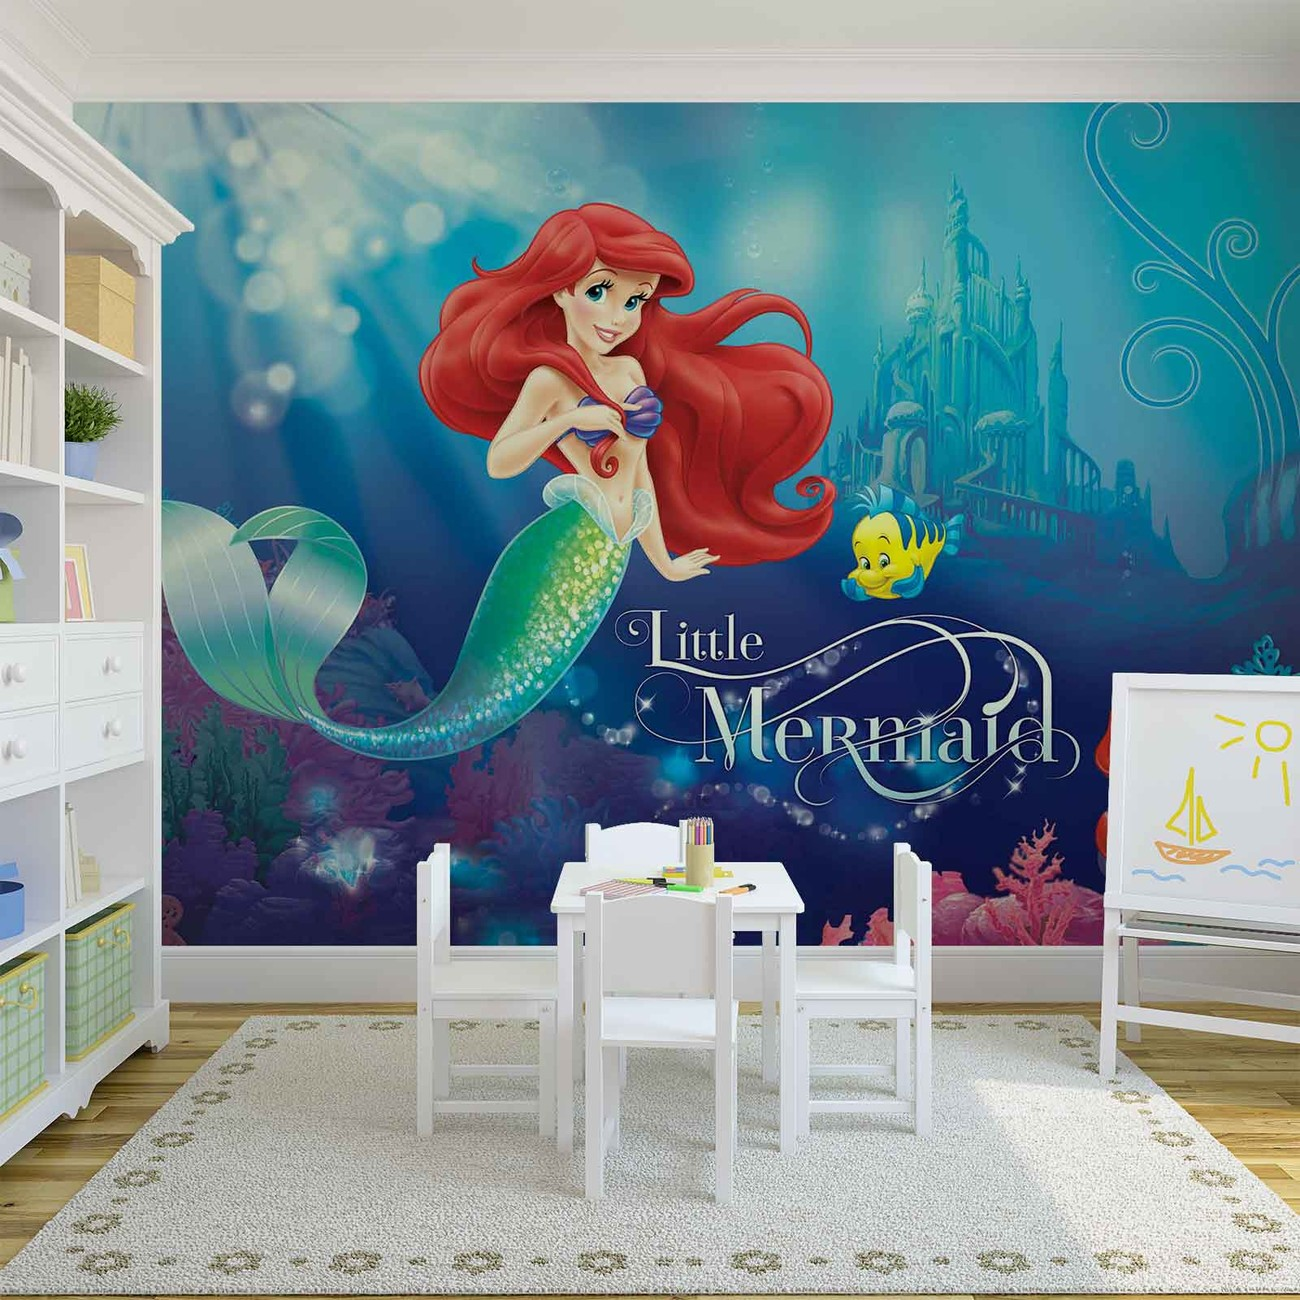 Disney princesses ariel wall paper mural buy at europosters for Disney princess mural asda